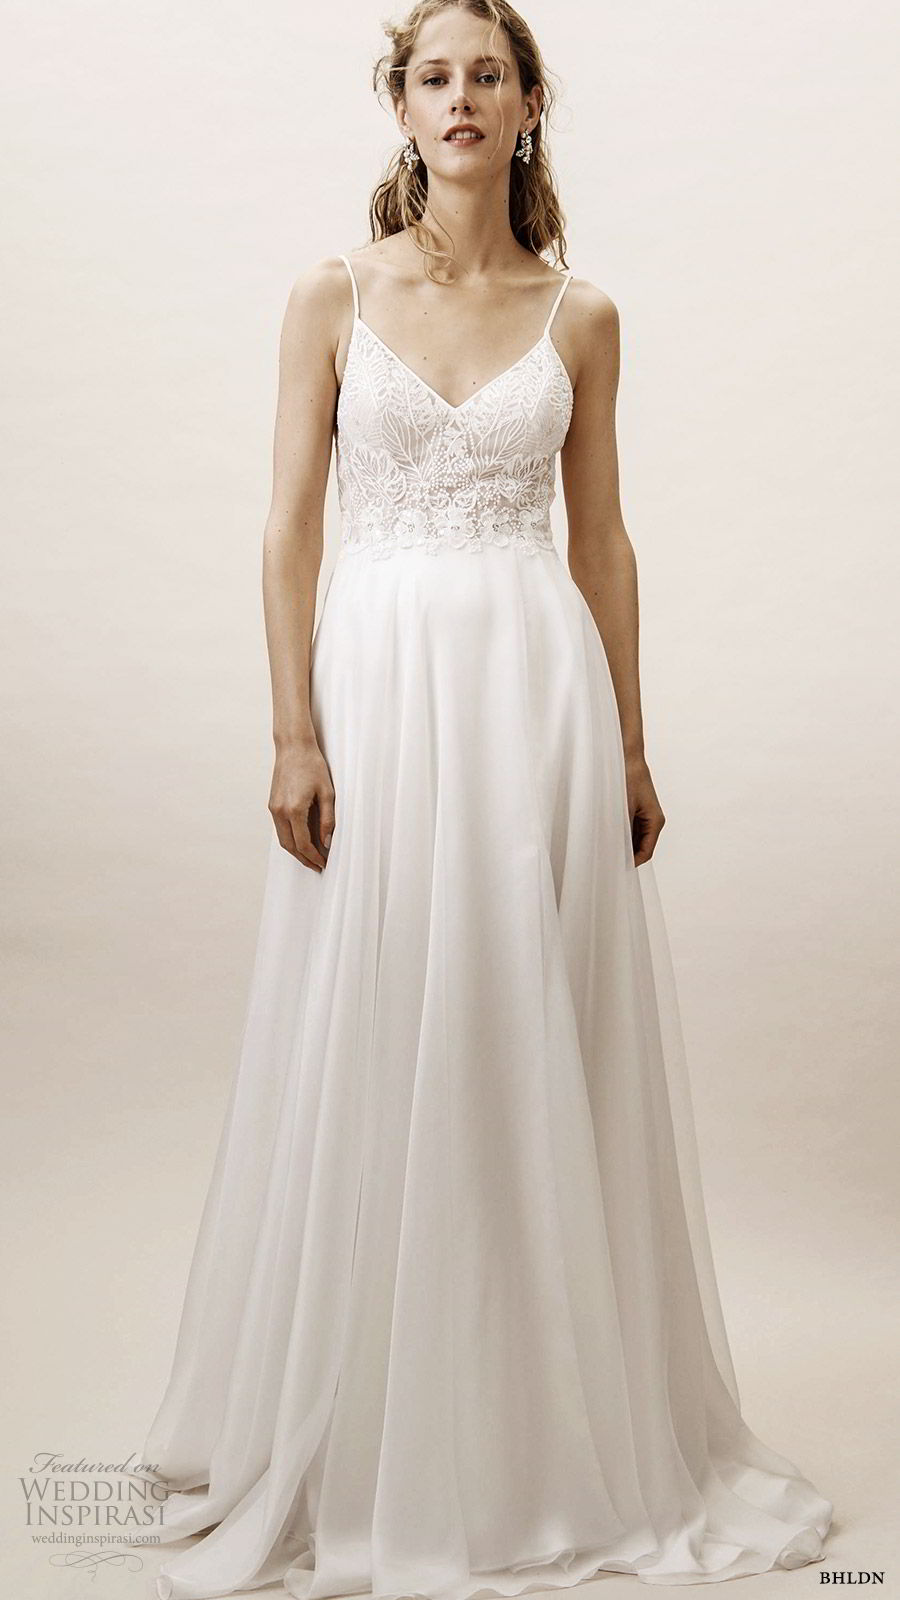 477dbf26633 bhldn spring 2019 bridal sleeveless thin straps sweetheart v neckline  embellished bodice a line wedding dress